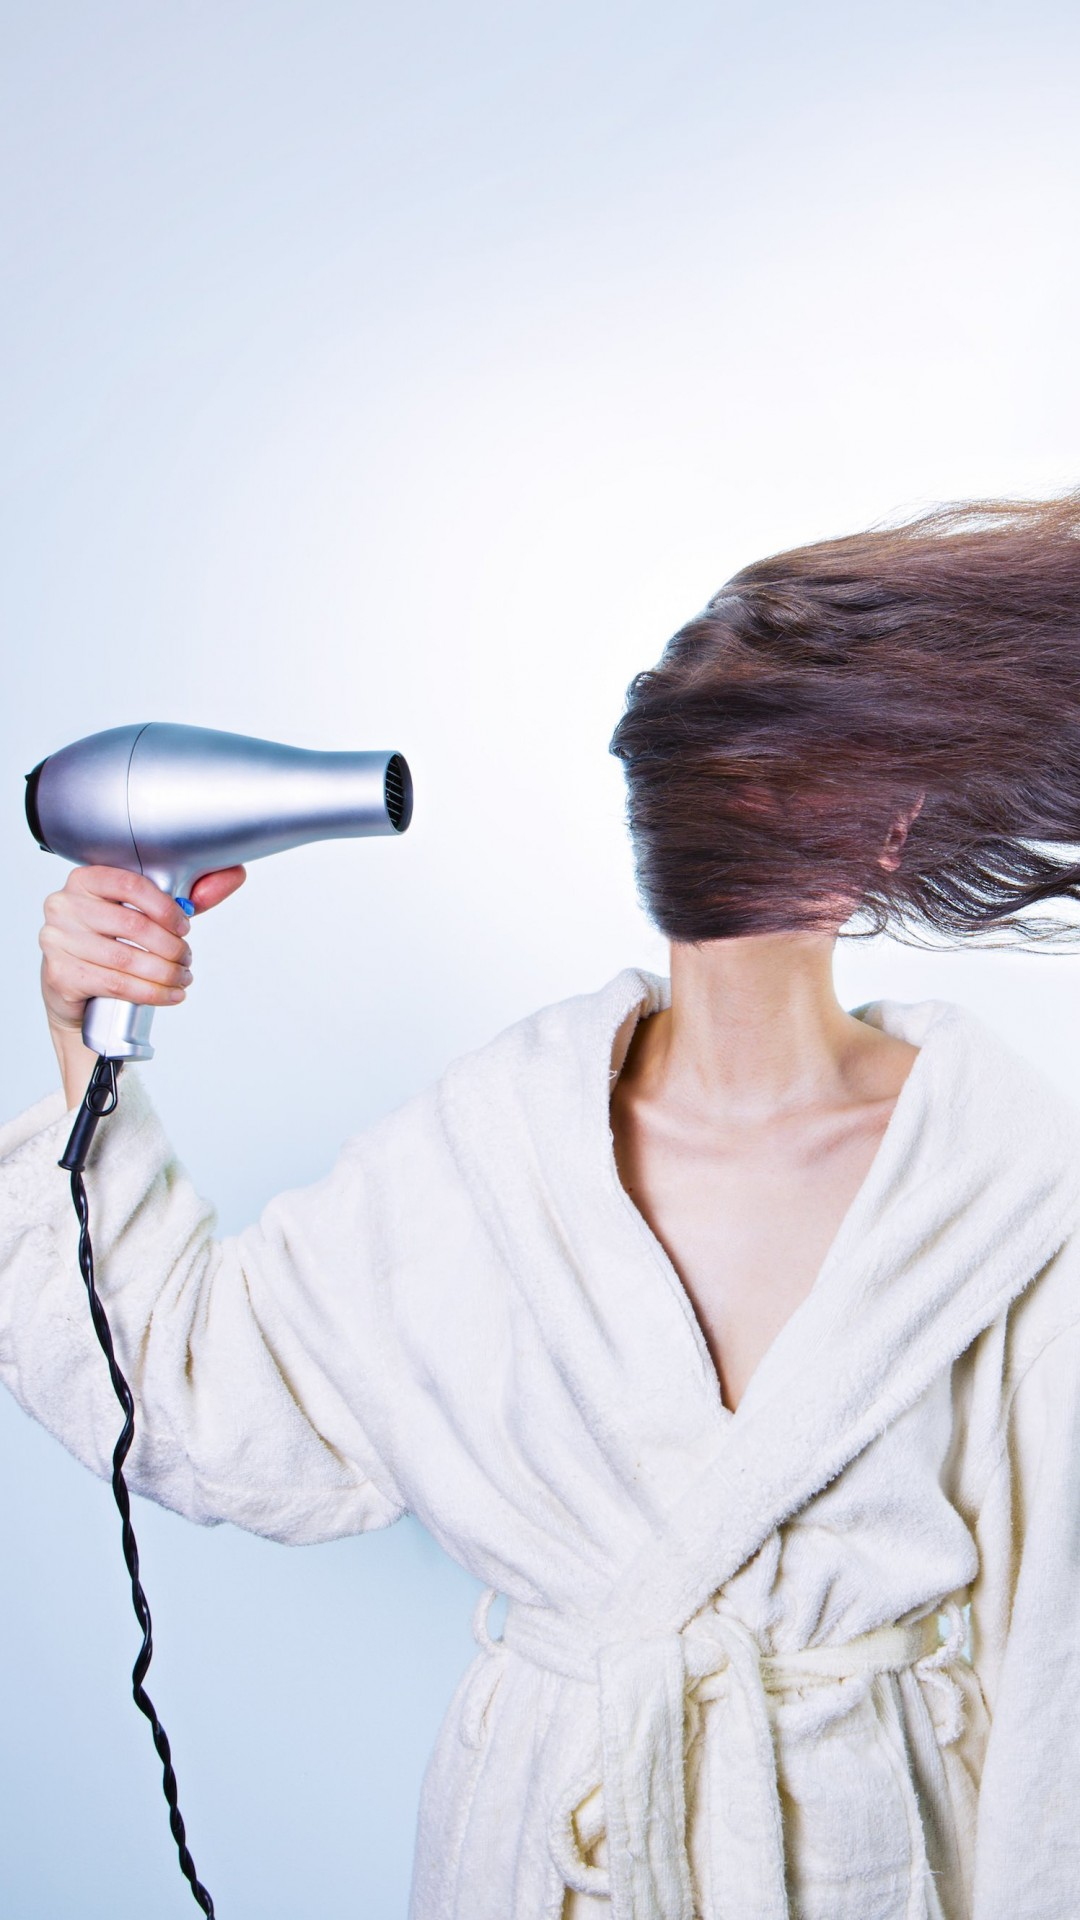 Powerful Hair Dryer Wallpaper for SAMSUNG Galaxy S4